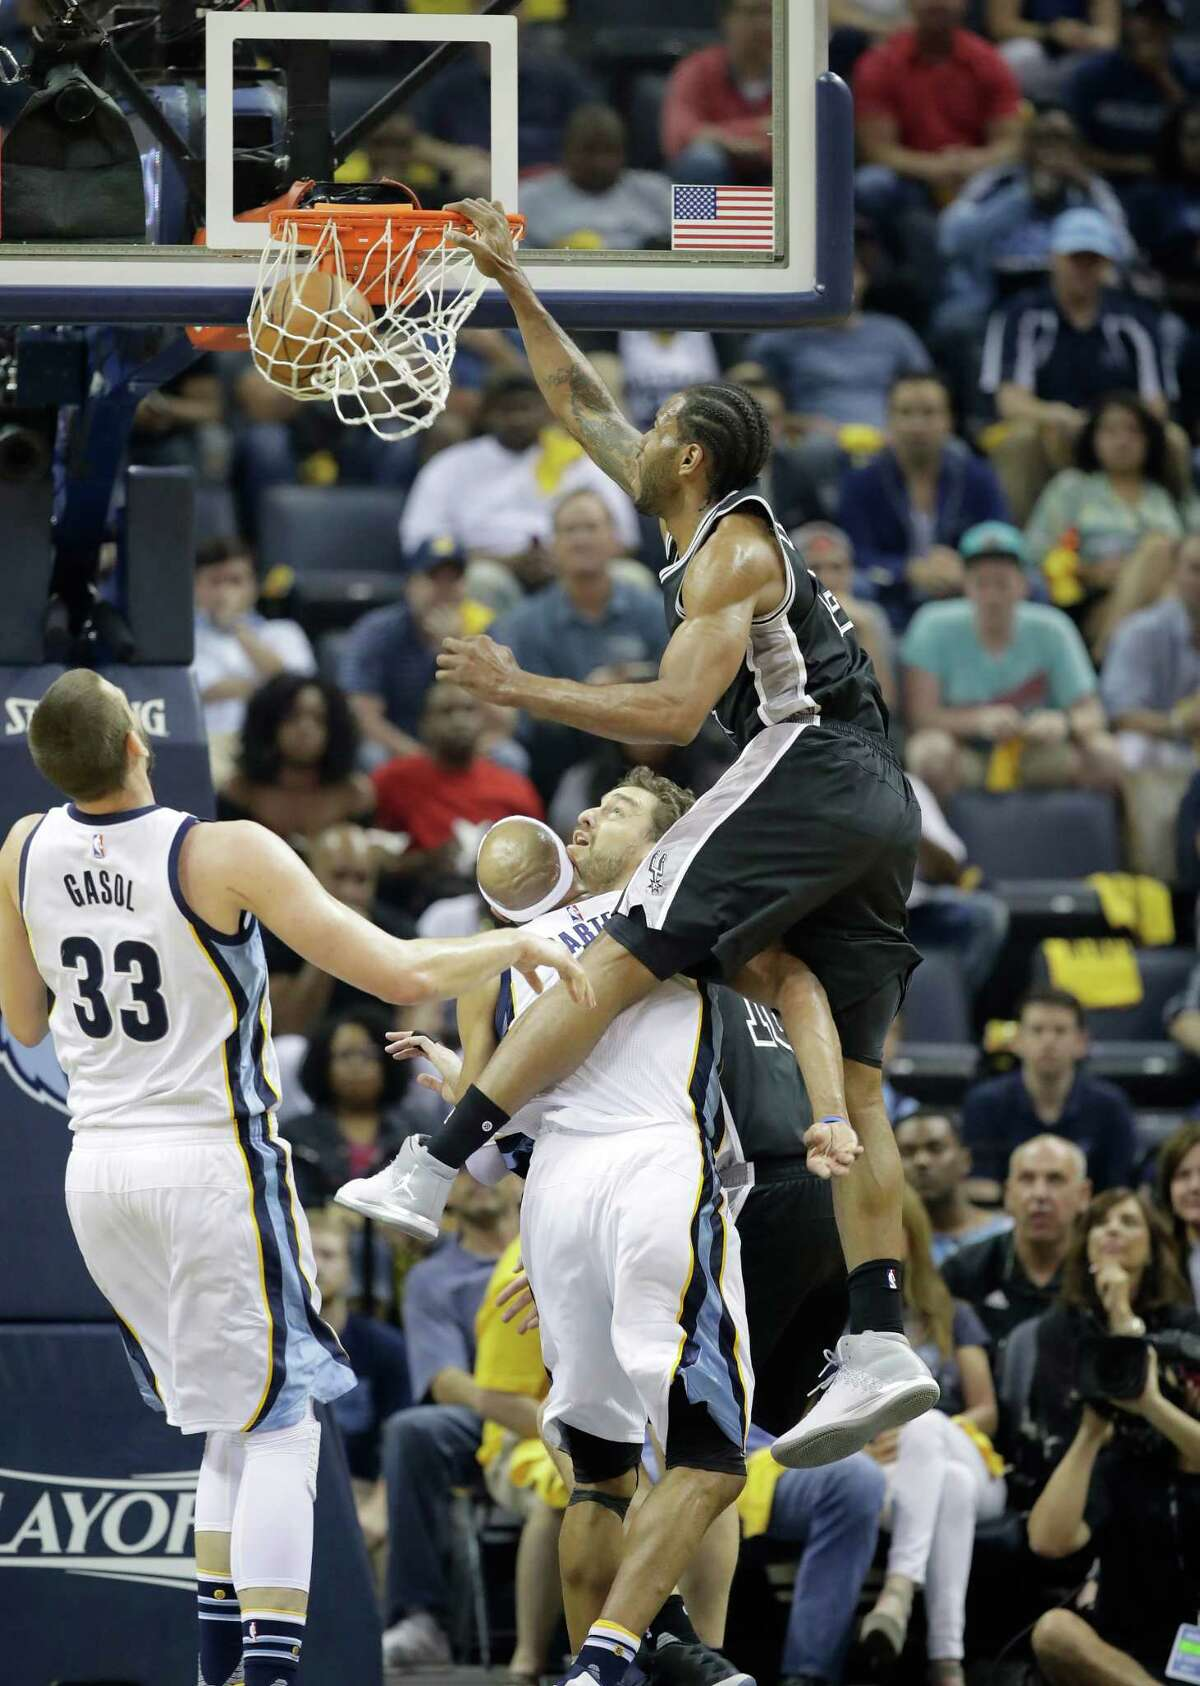 MEMPHIS, TN - APRIL 20: Kawhi Leonard #2 of the San Antonio Spurs dunks the ball against the Memphis Grizzlies in game three of the Western Conference Quarterfinals during the 2017 NBA Playoffs at FedExForum on April 20, 2017 in Memphis, Tennessee. NOTE TO USER: User expressly acknowledges and agrees that, by downloading and or using this photograph, User is consenting to the terms and conditions of the Getty Images License Agreement